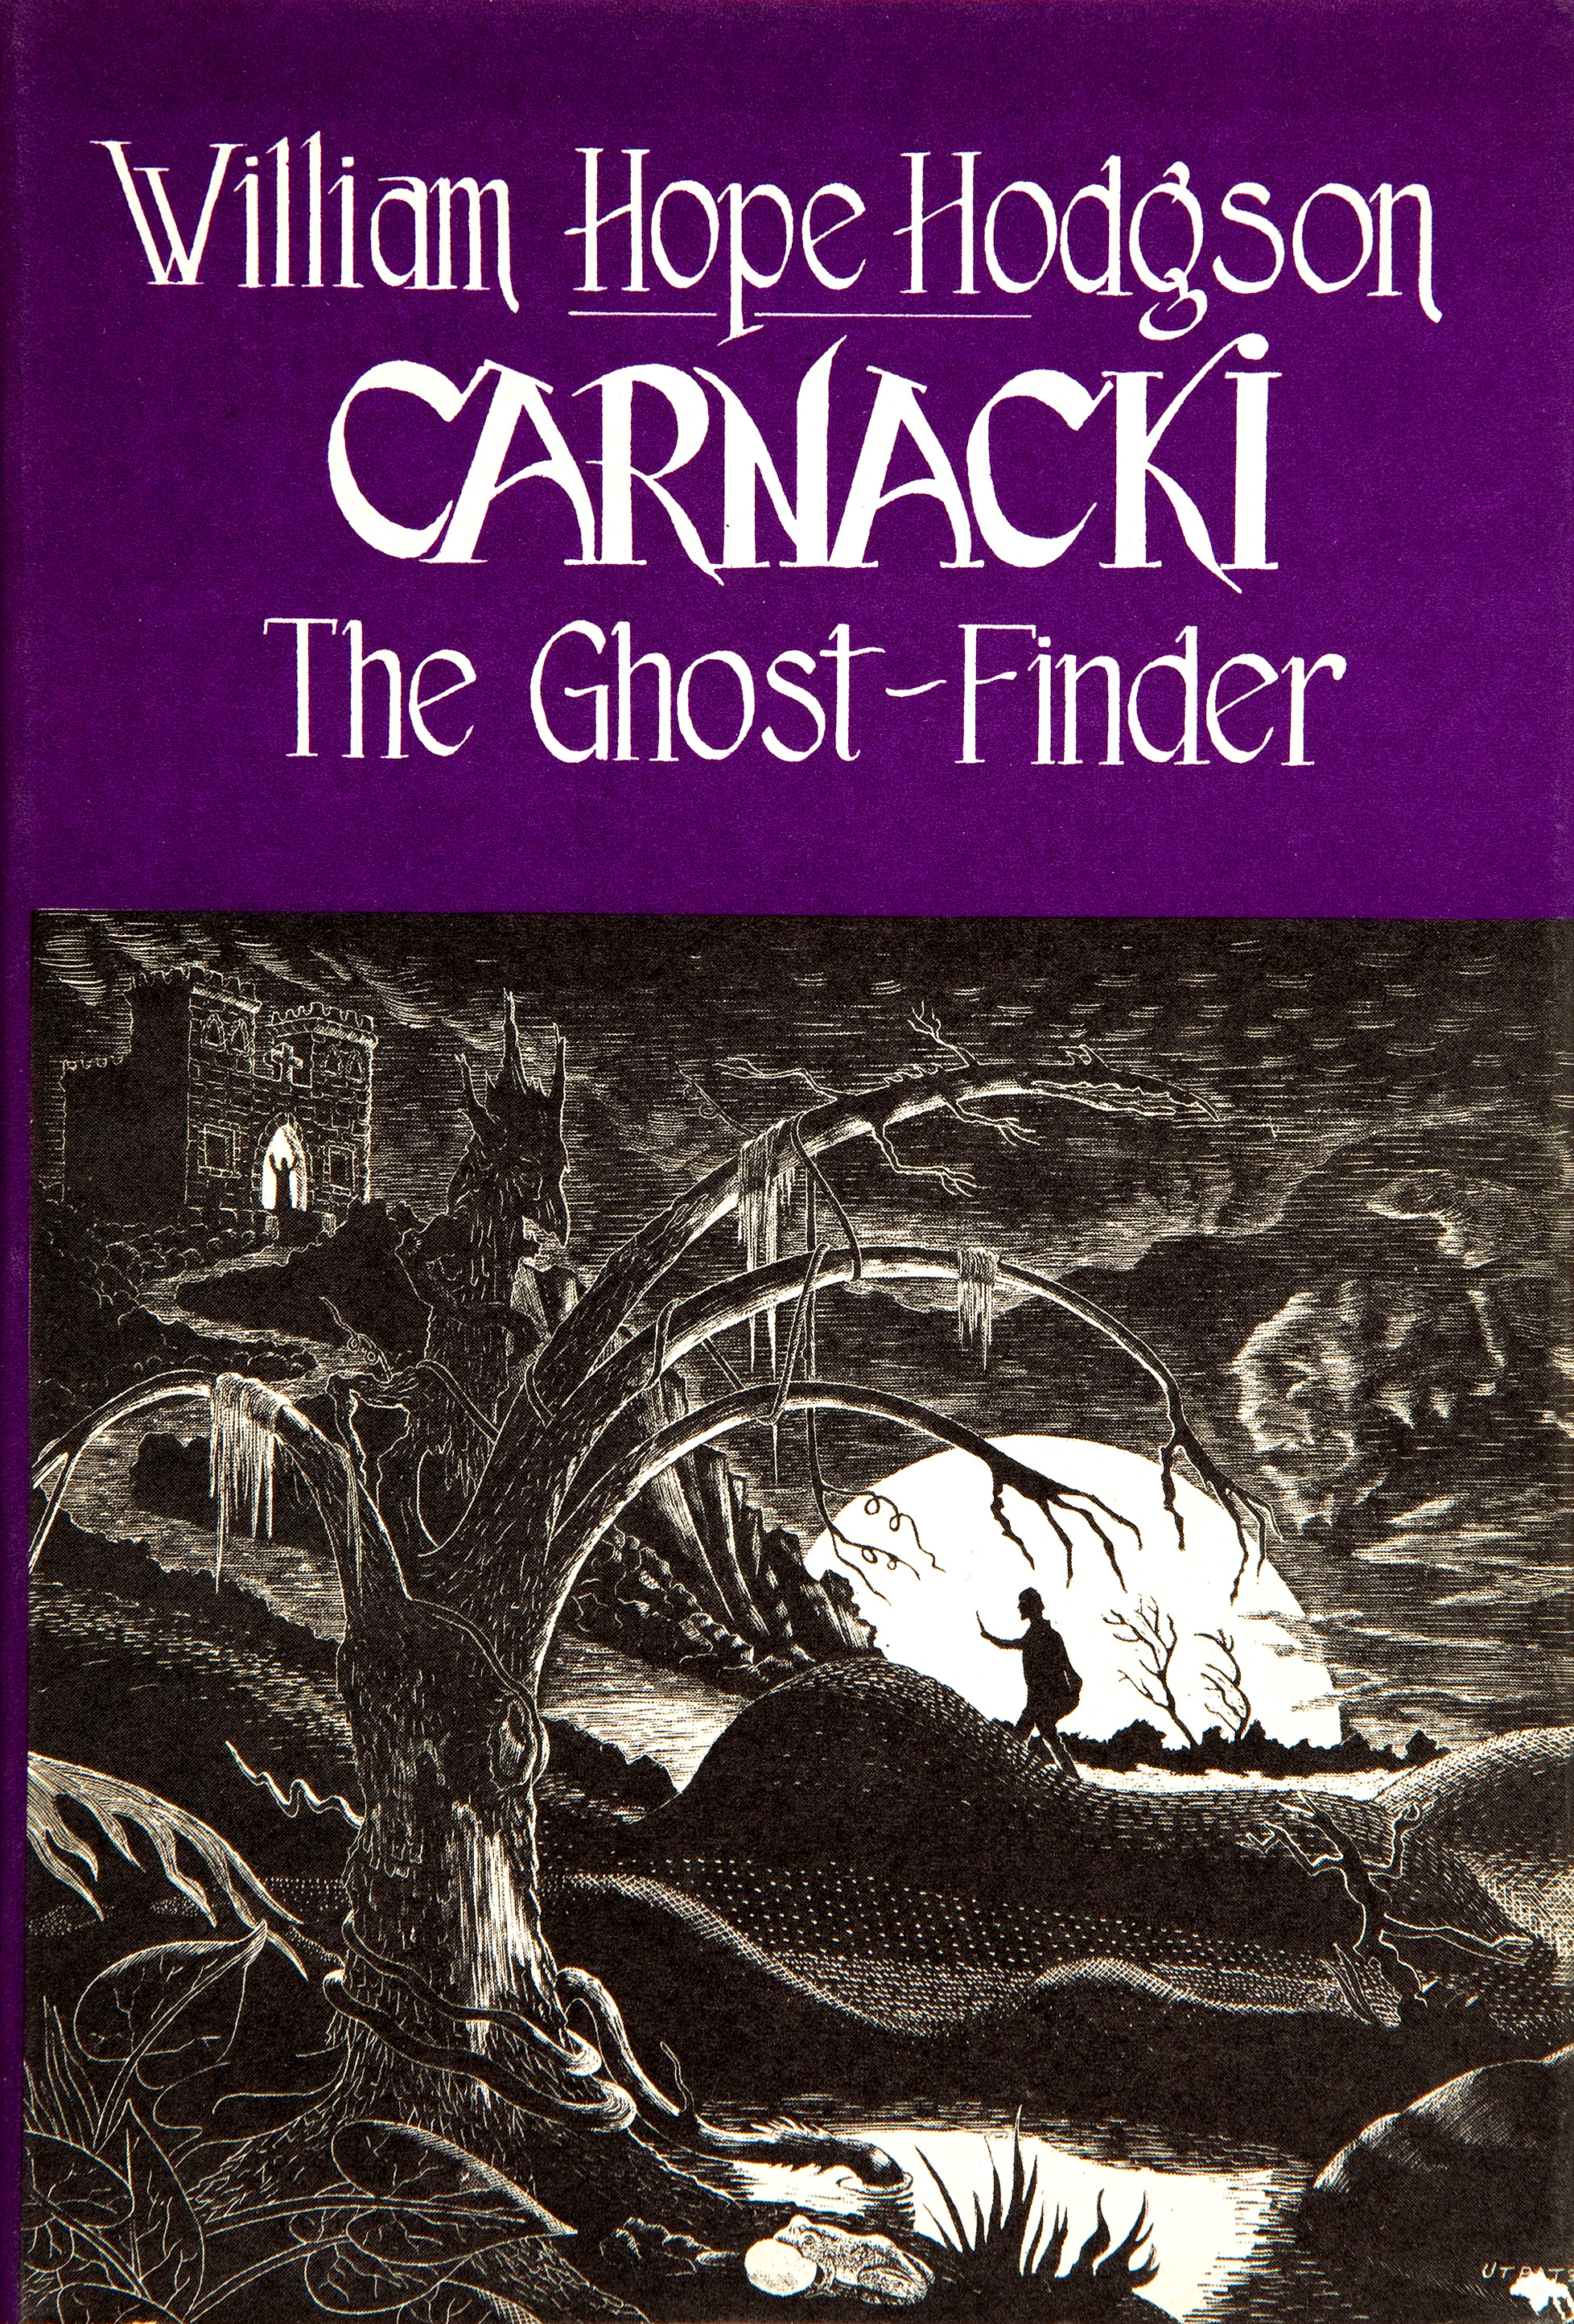 Frank Utpatel cover for William Hope Hodgson's Carnacki, the Ghost-Finder, 1947